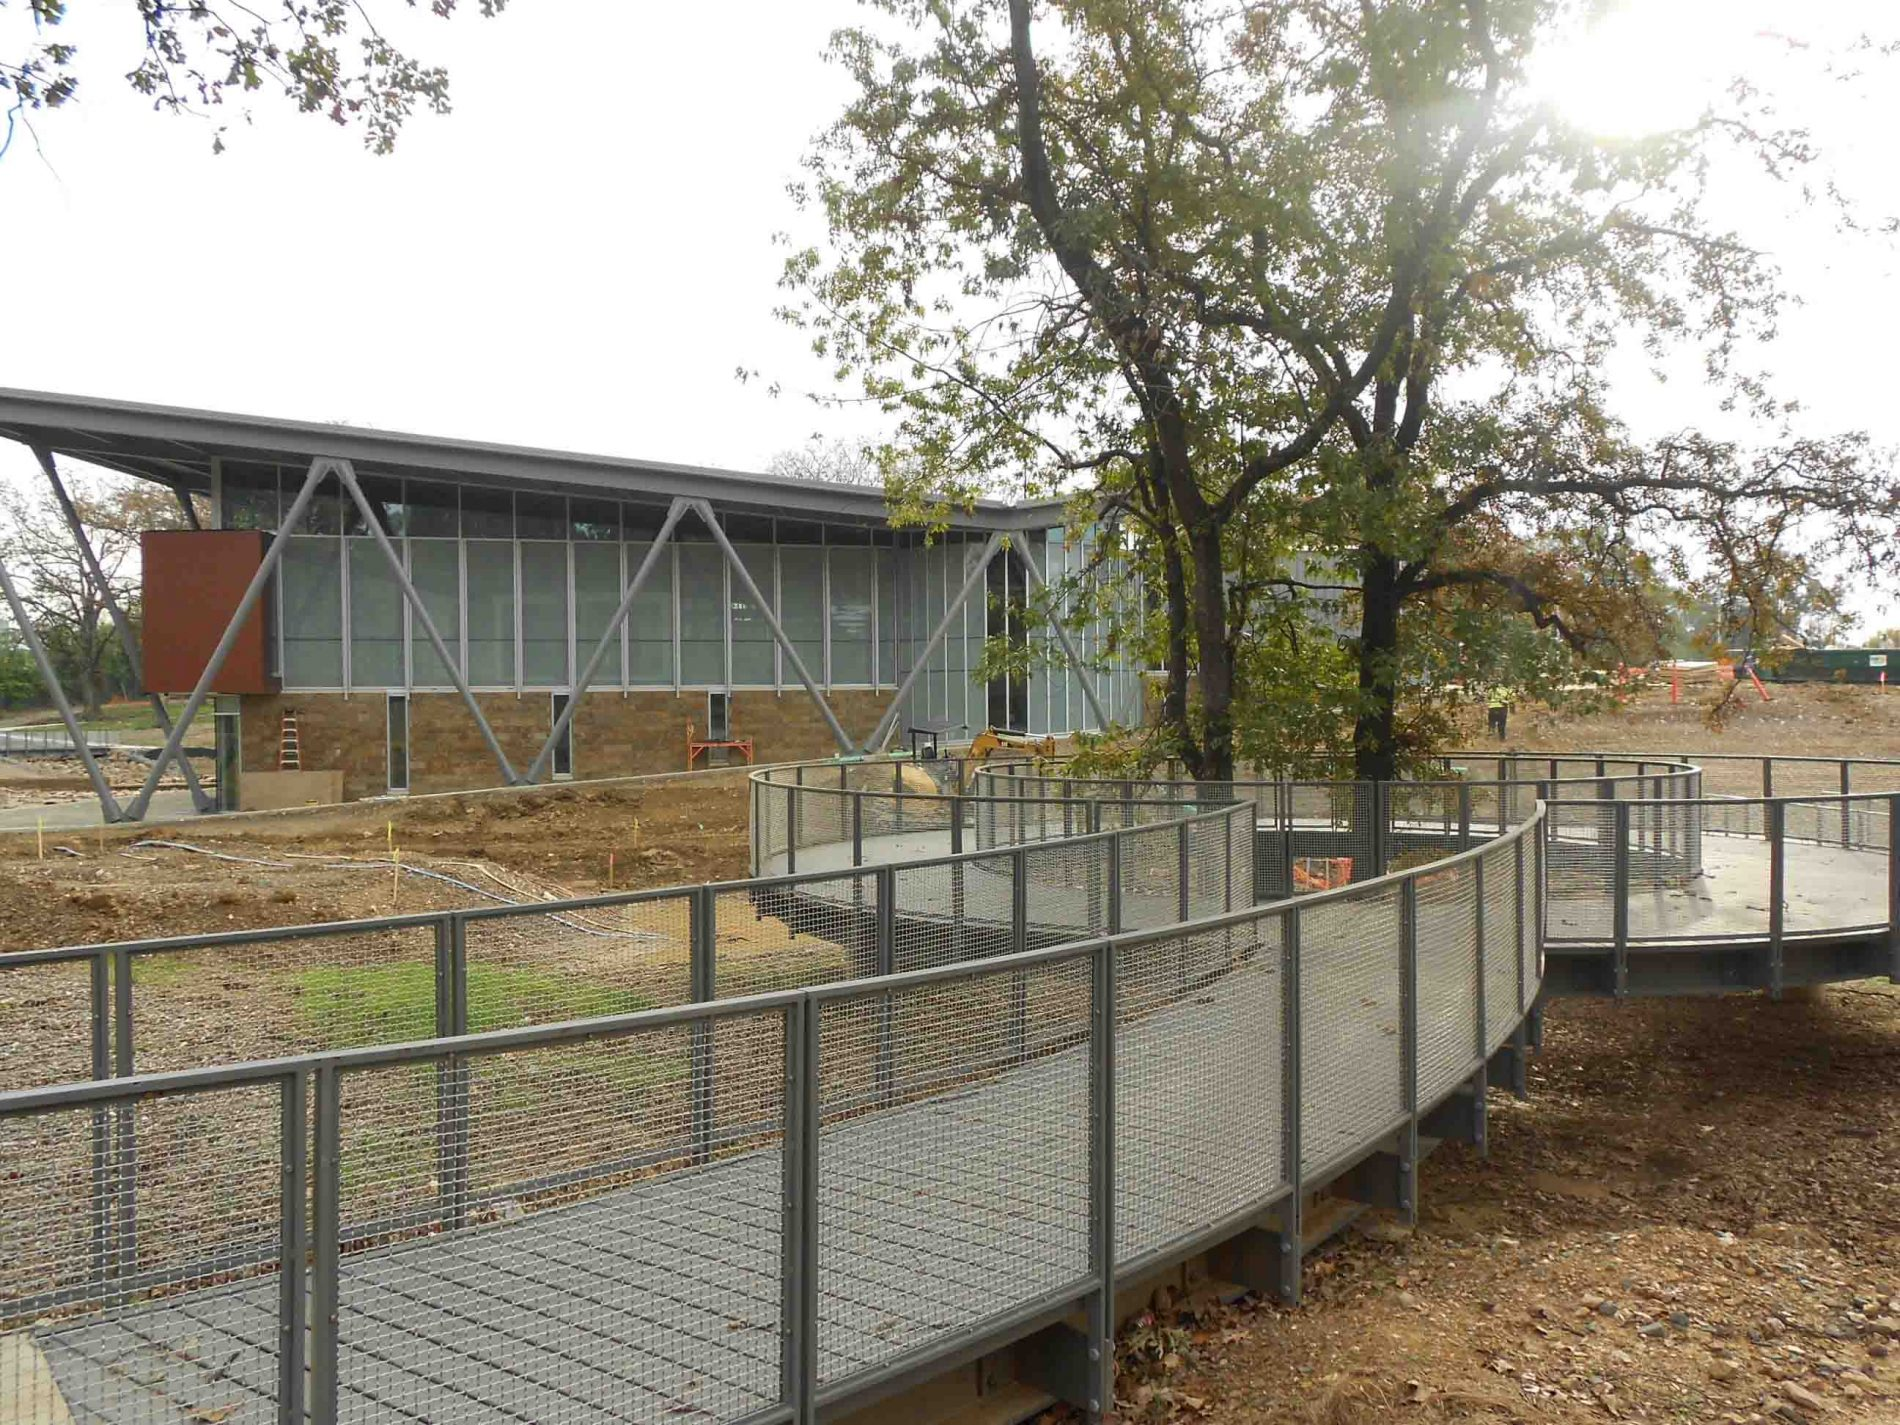 CALS Hillary Rodham Clinton Children's Library and Learning Center/ES